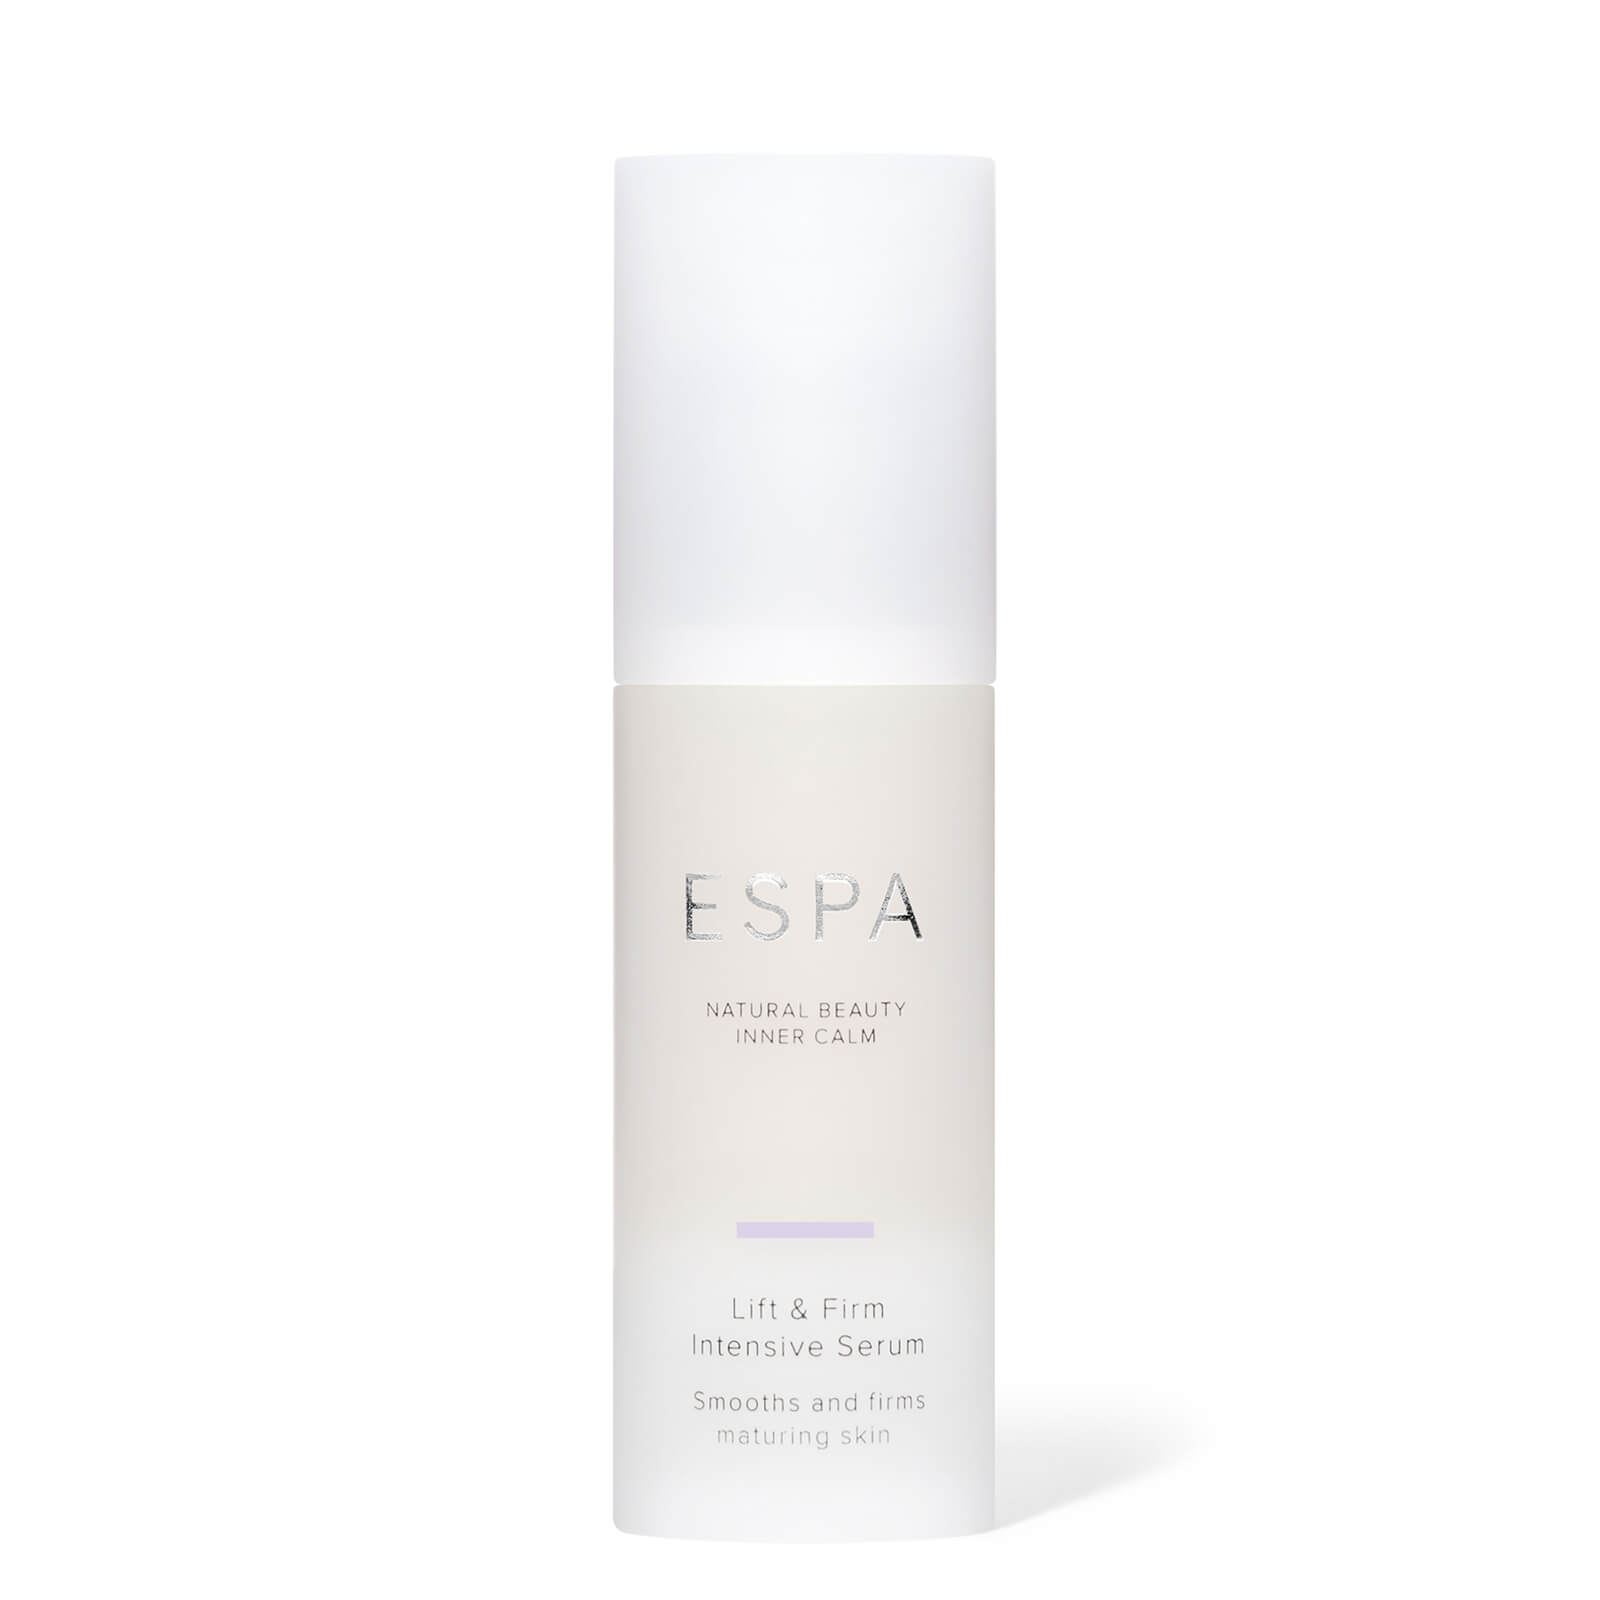 Lift and Firm Intensive Serum